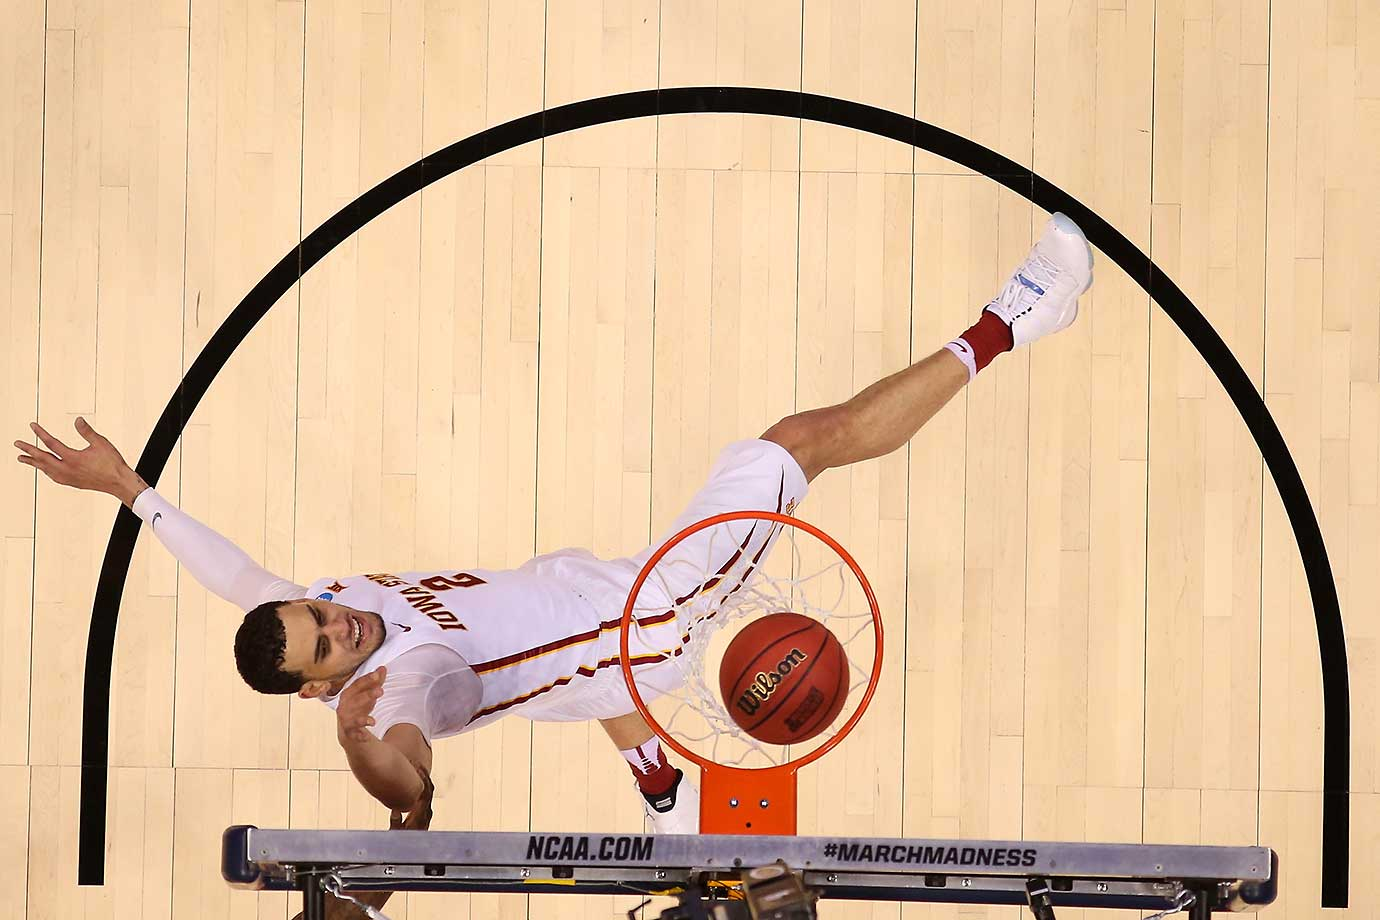 Abdel Nader of Iowa State completes a shot after being fouled by the Iona Gaels.